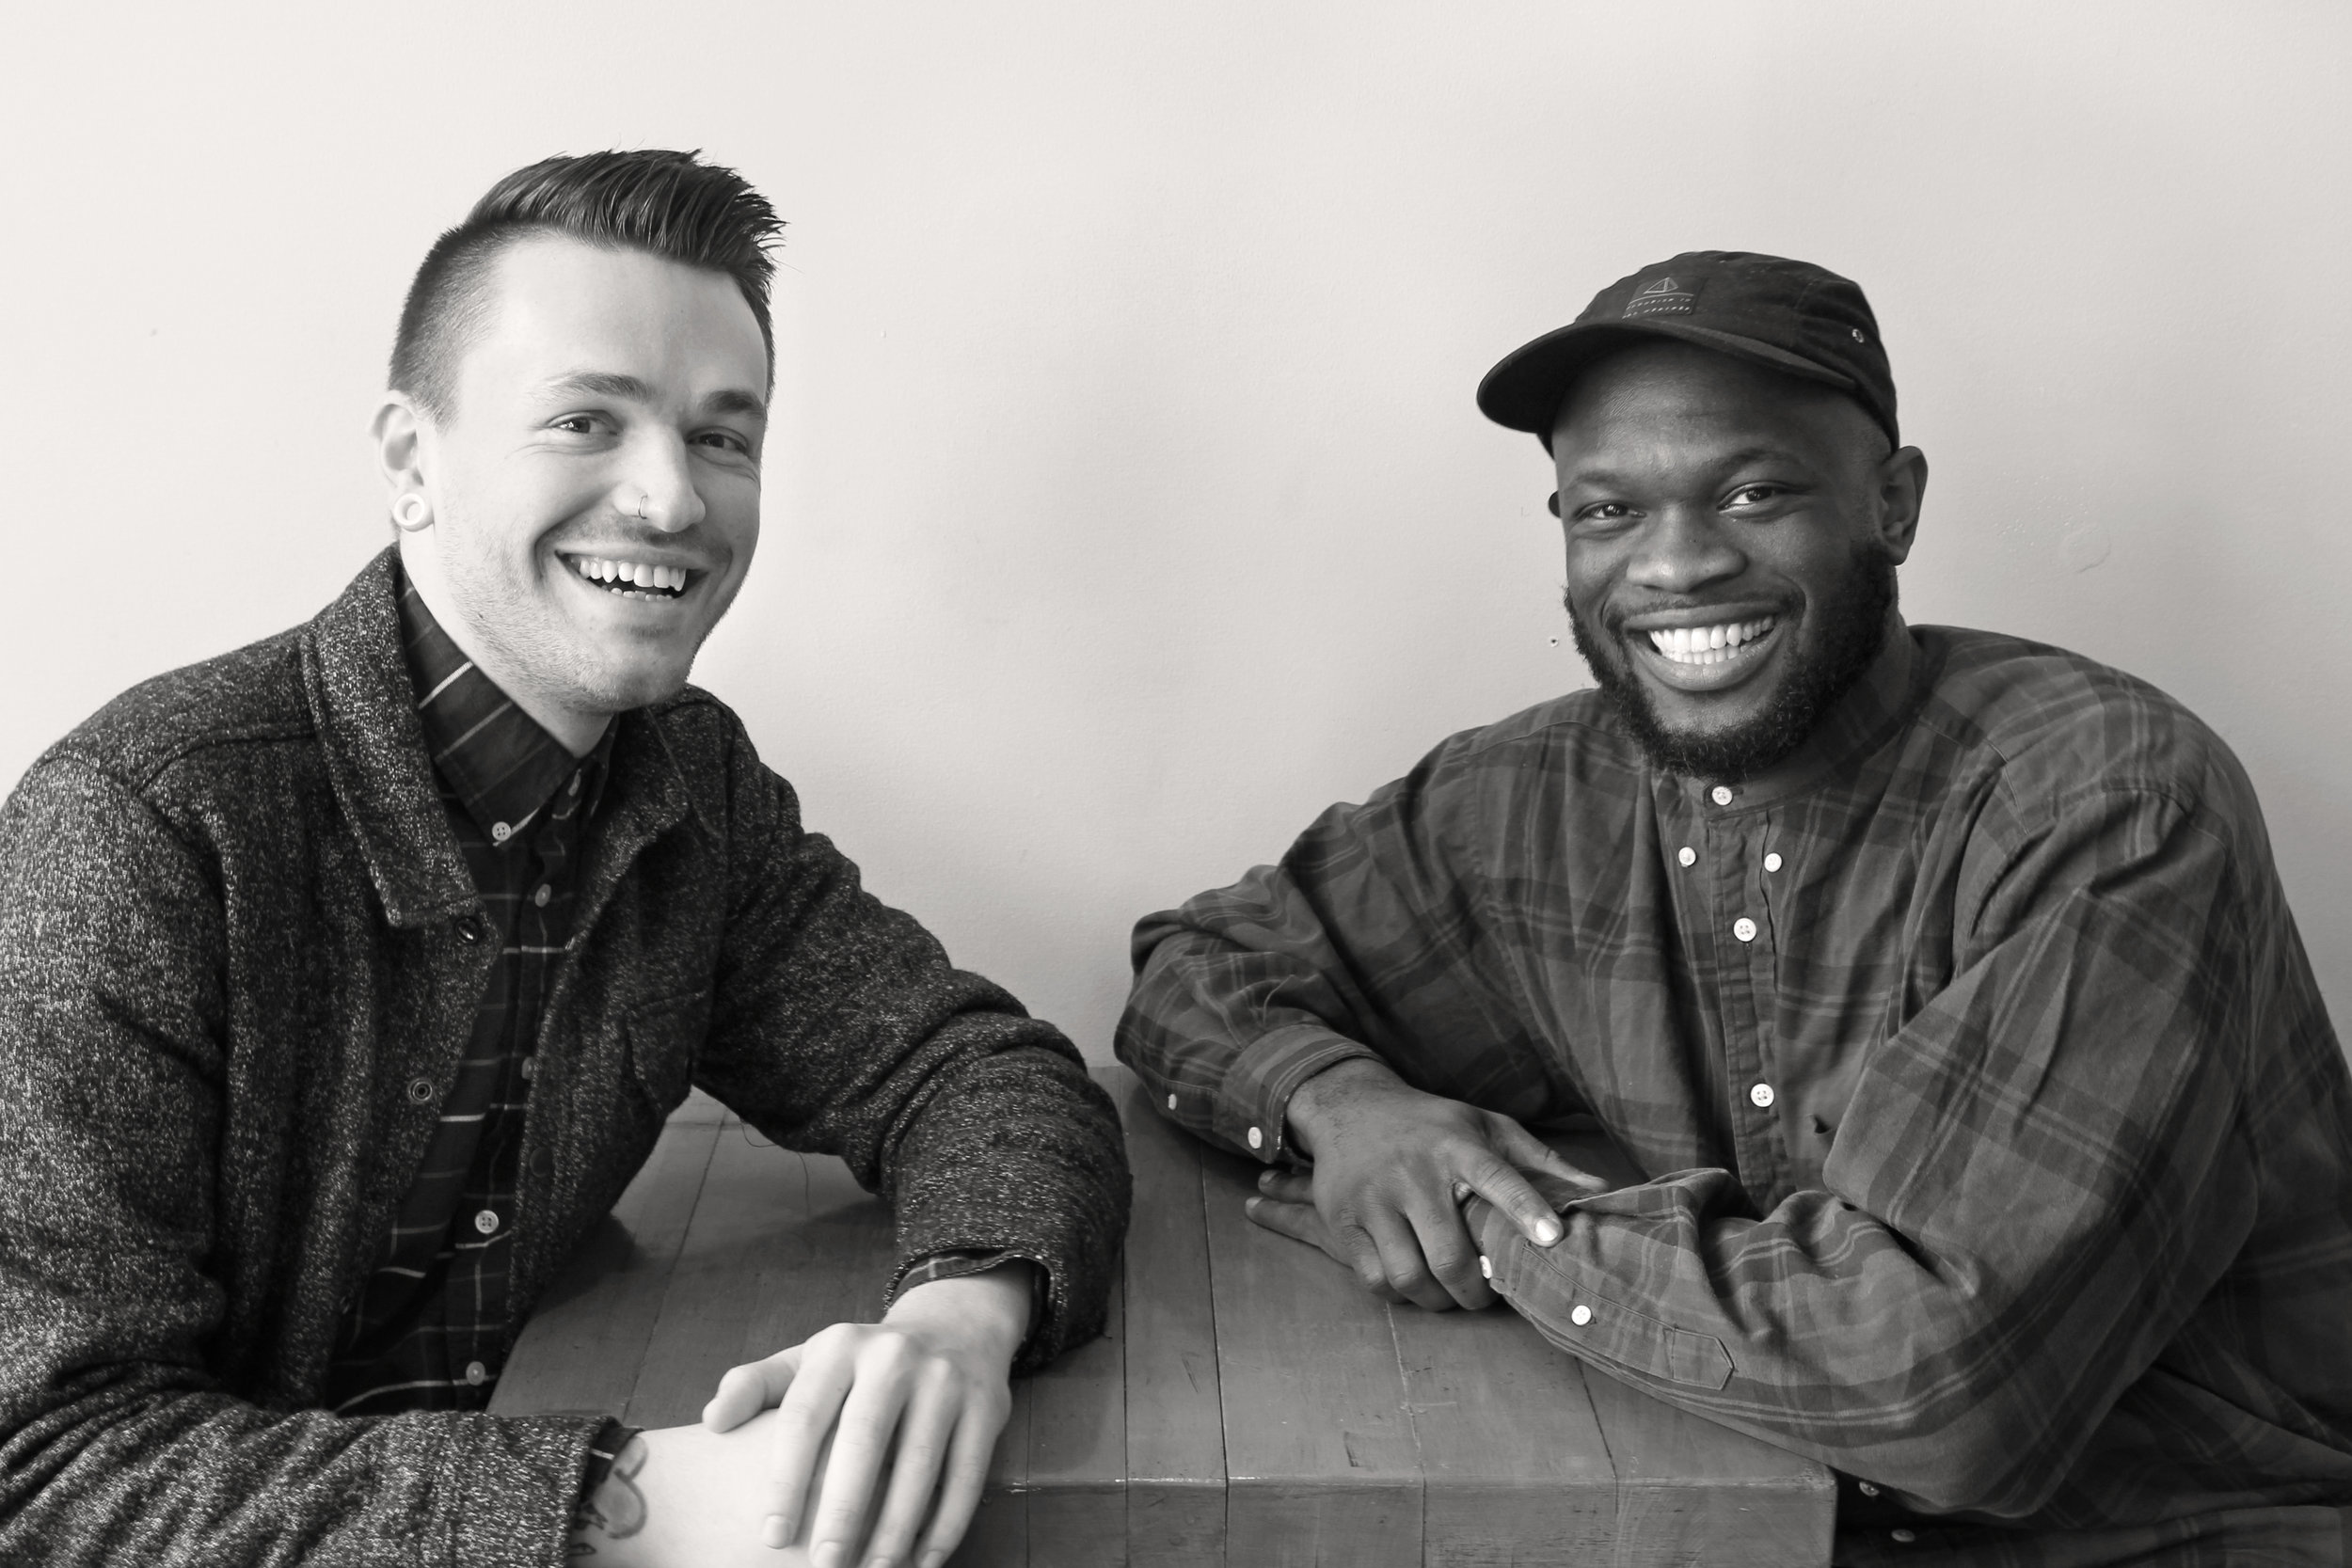 """Today on """"Grounded, A Humanist Radio Show"""" host Chris Stedman and Onyeka Obiocha discuss president Donald Trump's 1st week in office, and about their new years resolutions."""